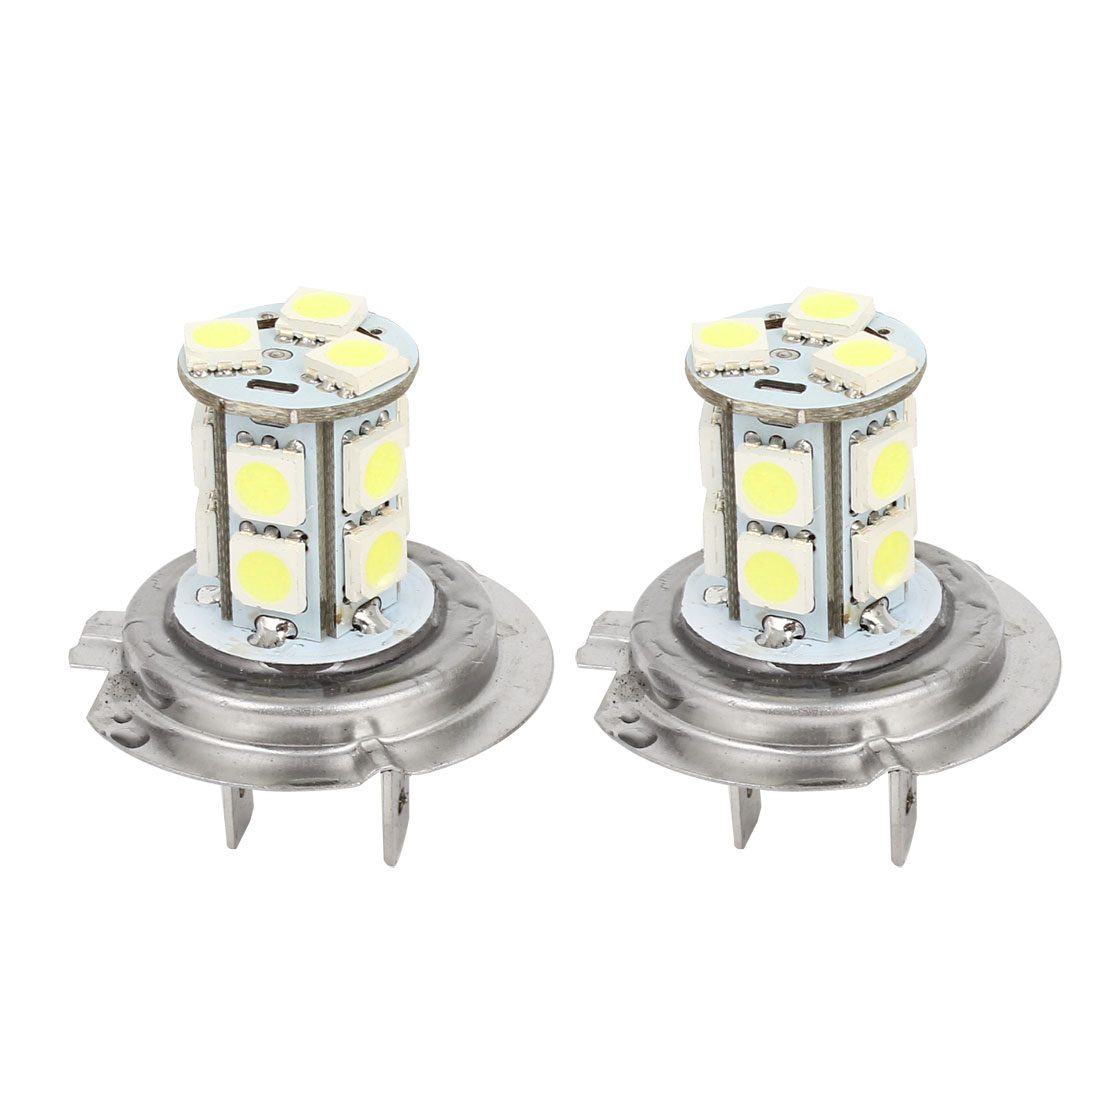 Car White LED 13 SMD 5050 Bulbs H7 Fog Daytime Light Lamp 2 Pcs